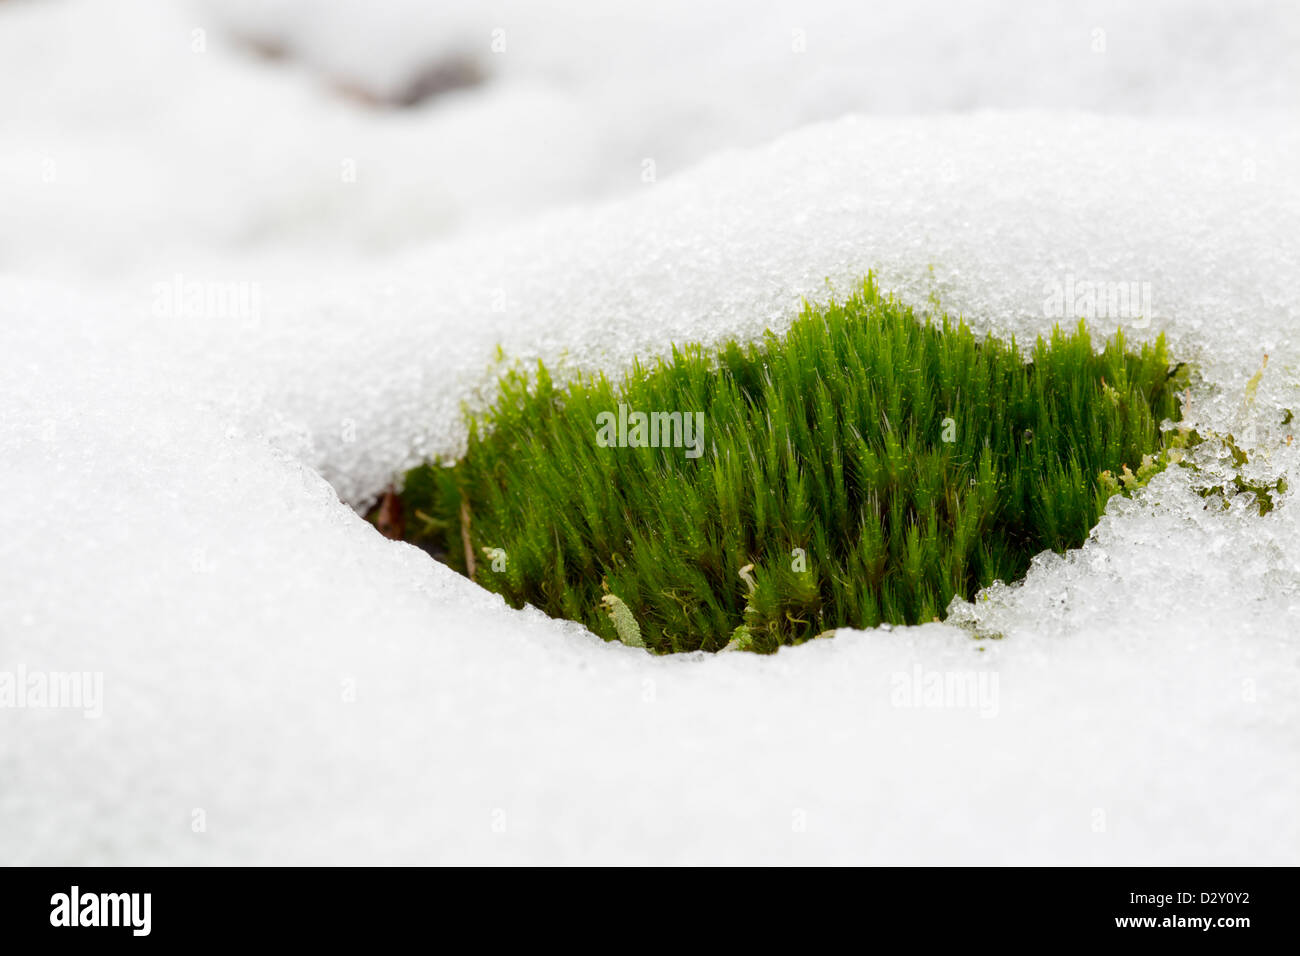 Moss in snow; UK - Stock Image